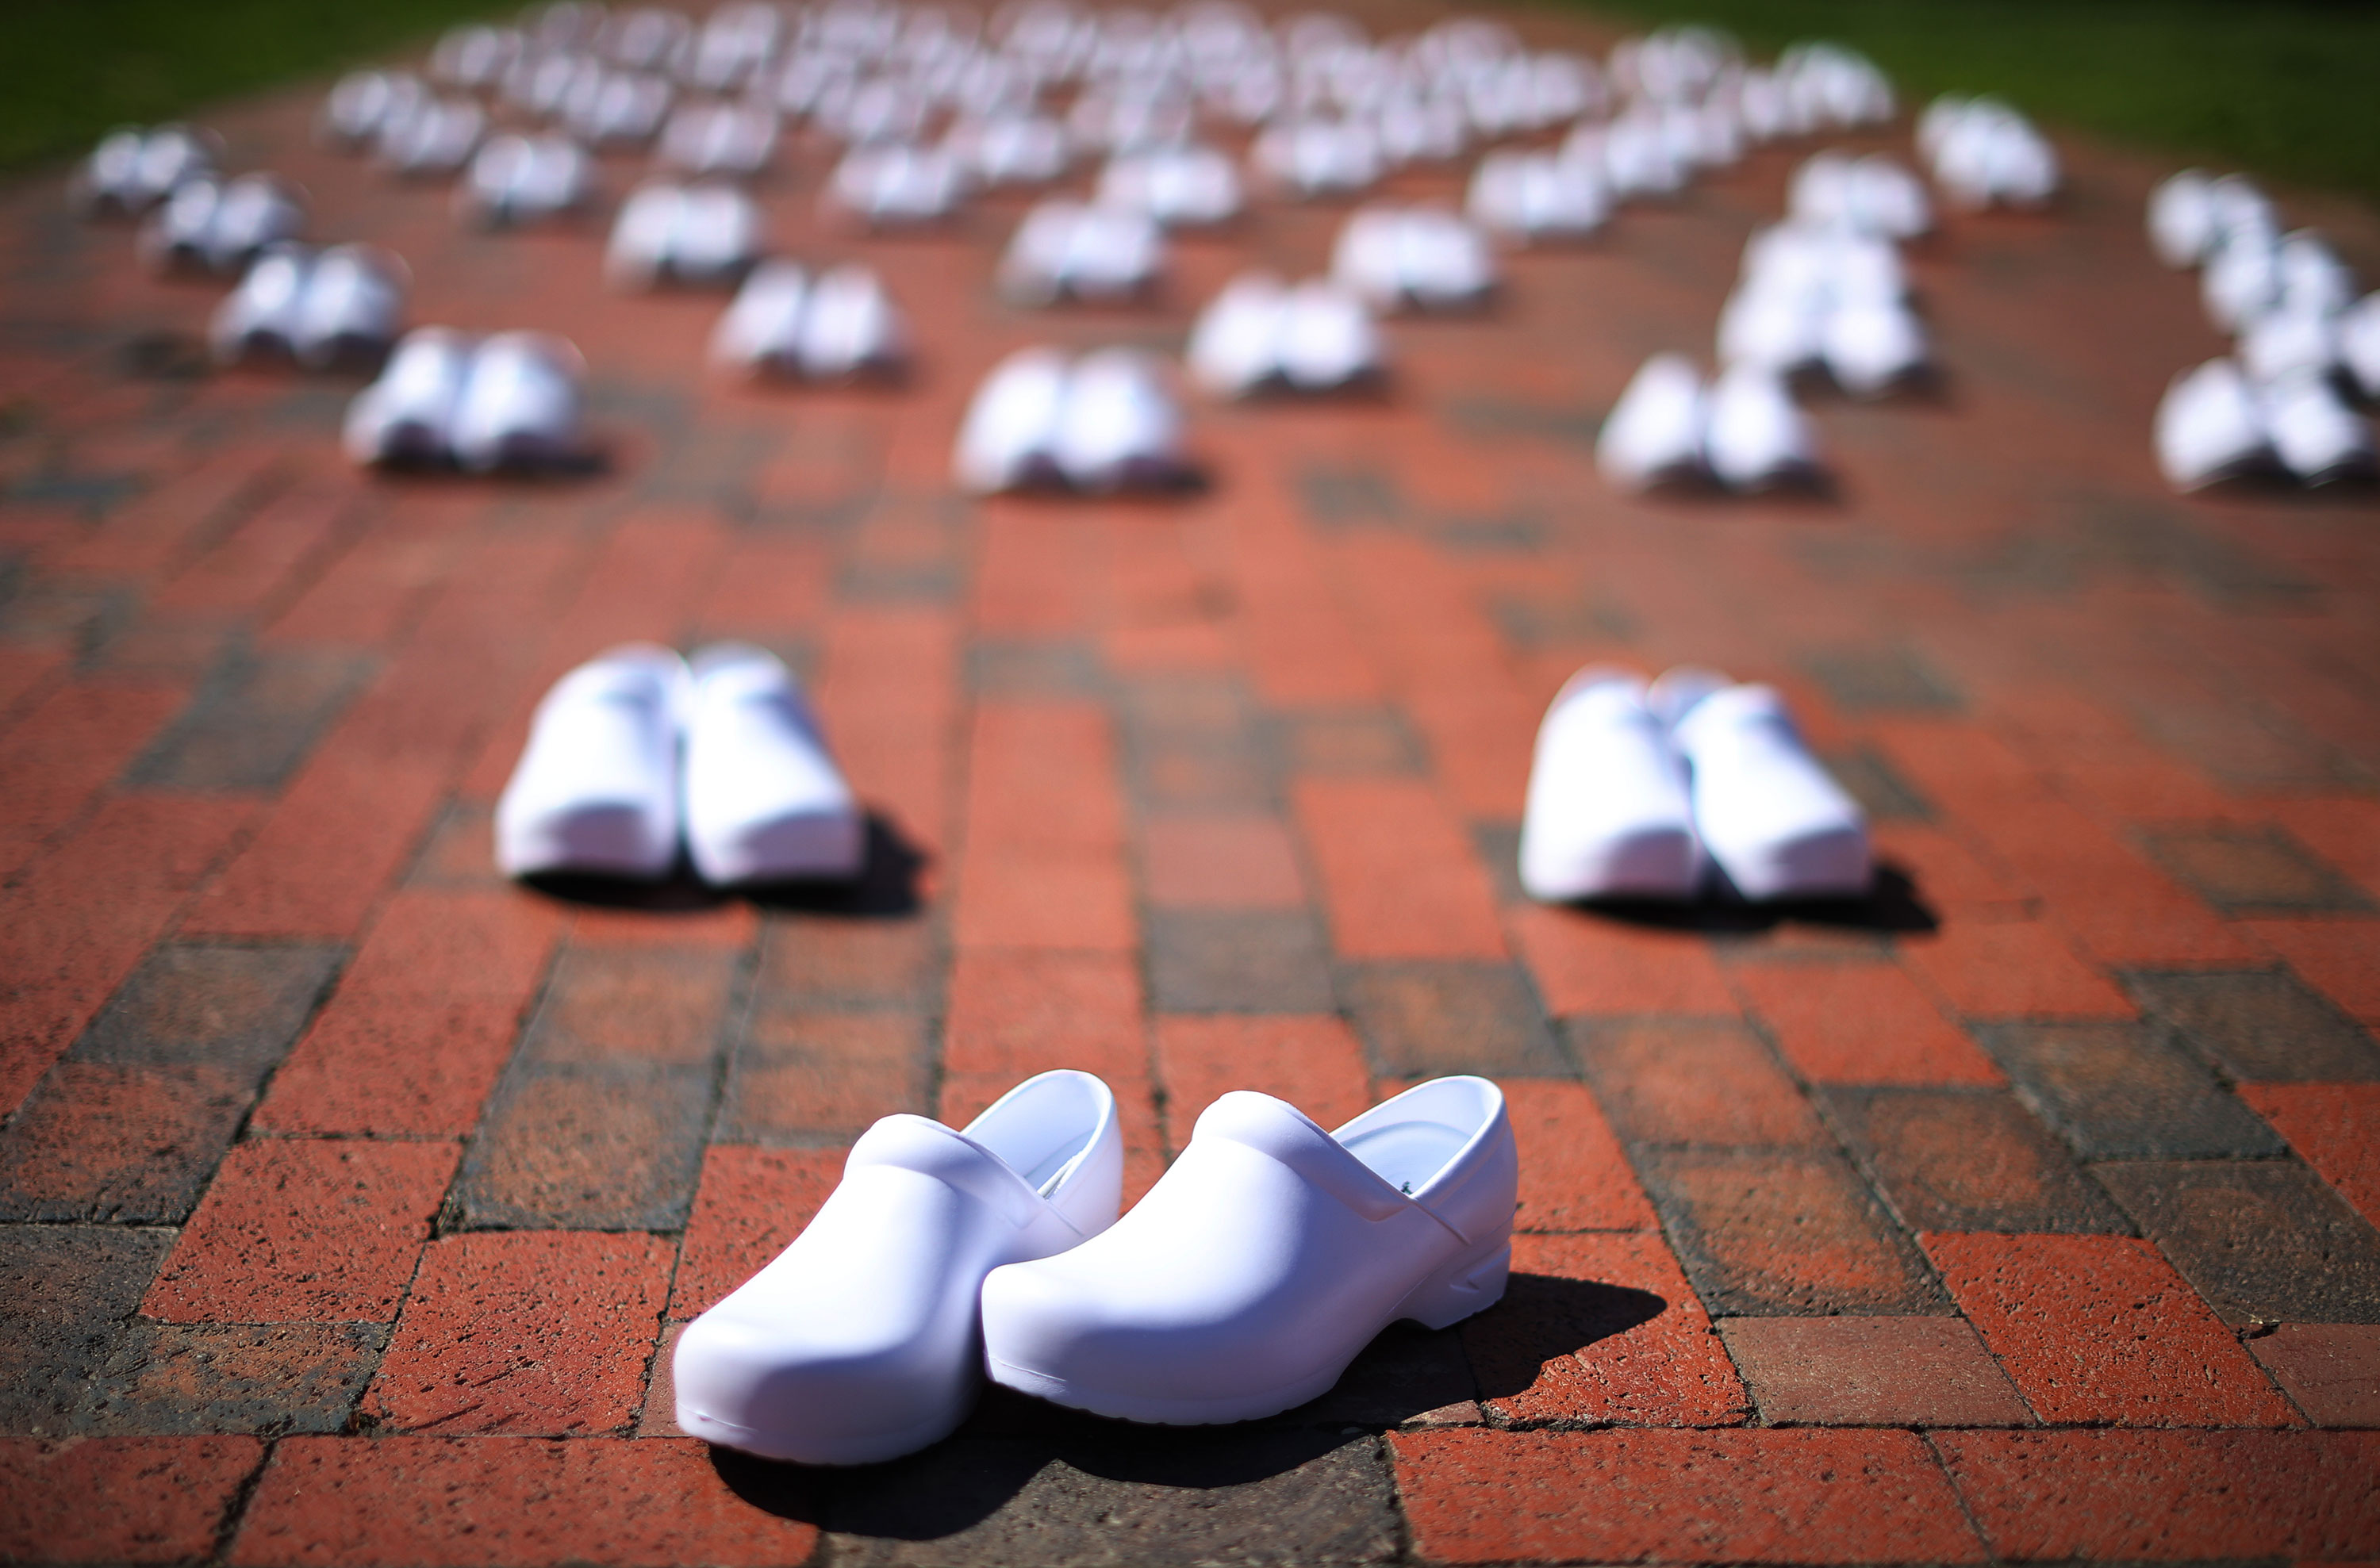 The National Nurses United set out 88 empty pairs of shoes on May 7 in Washington representing nurses that they say have died from COVID-19.